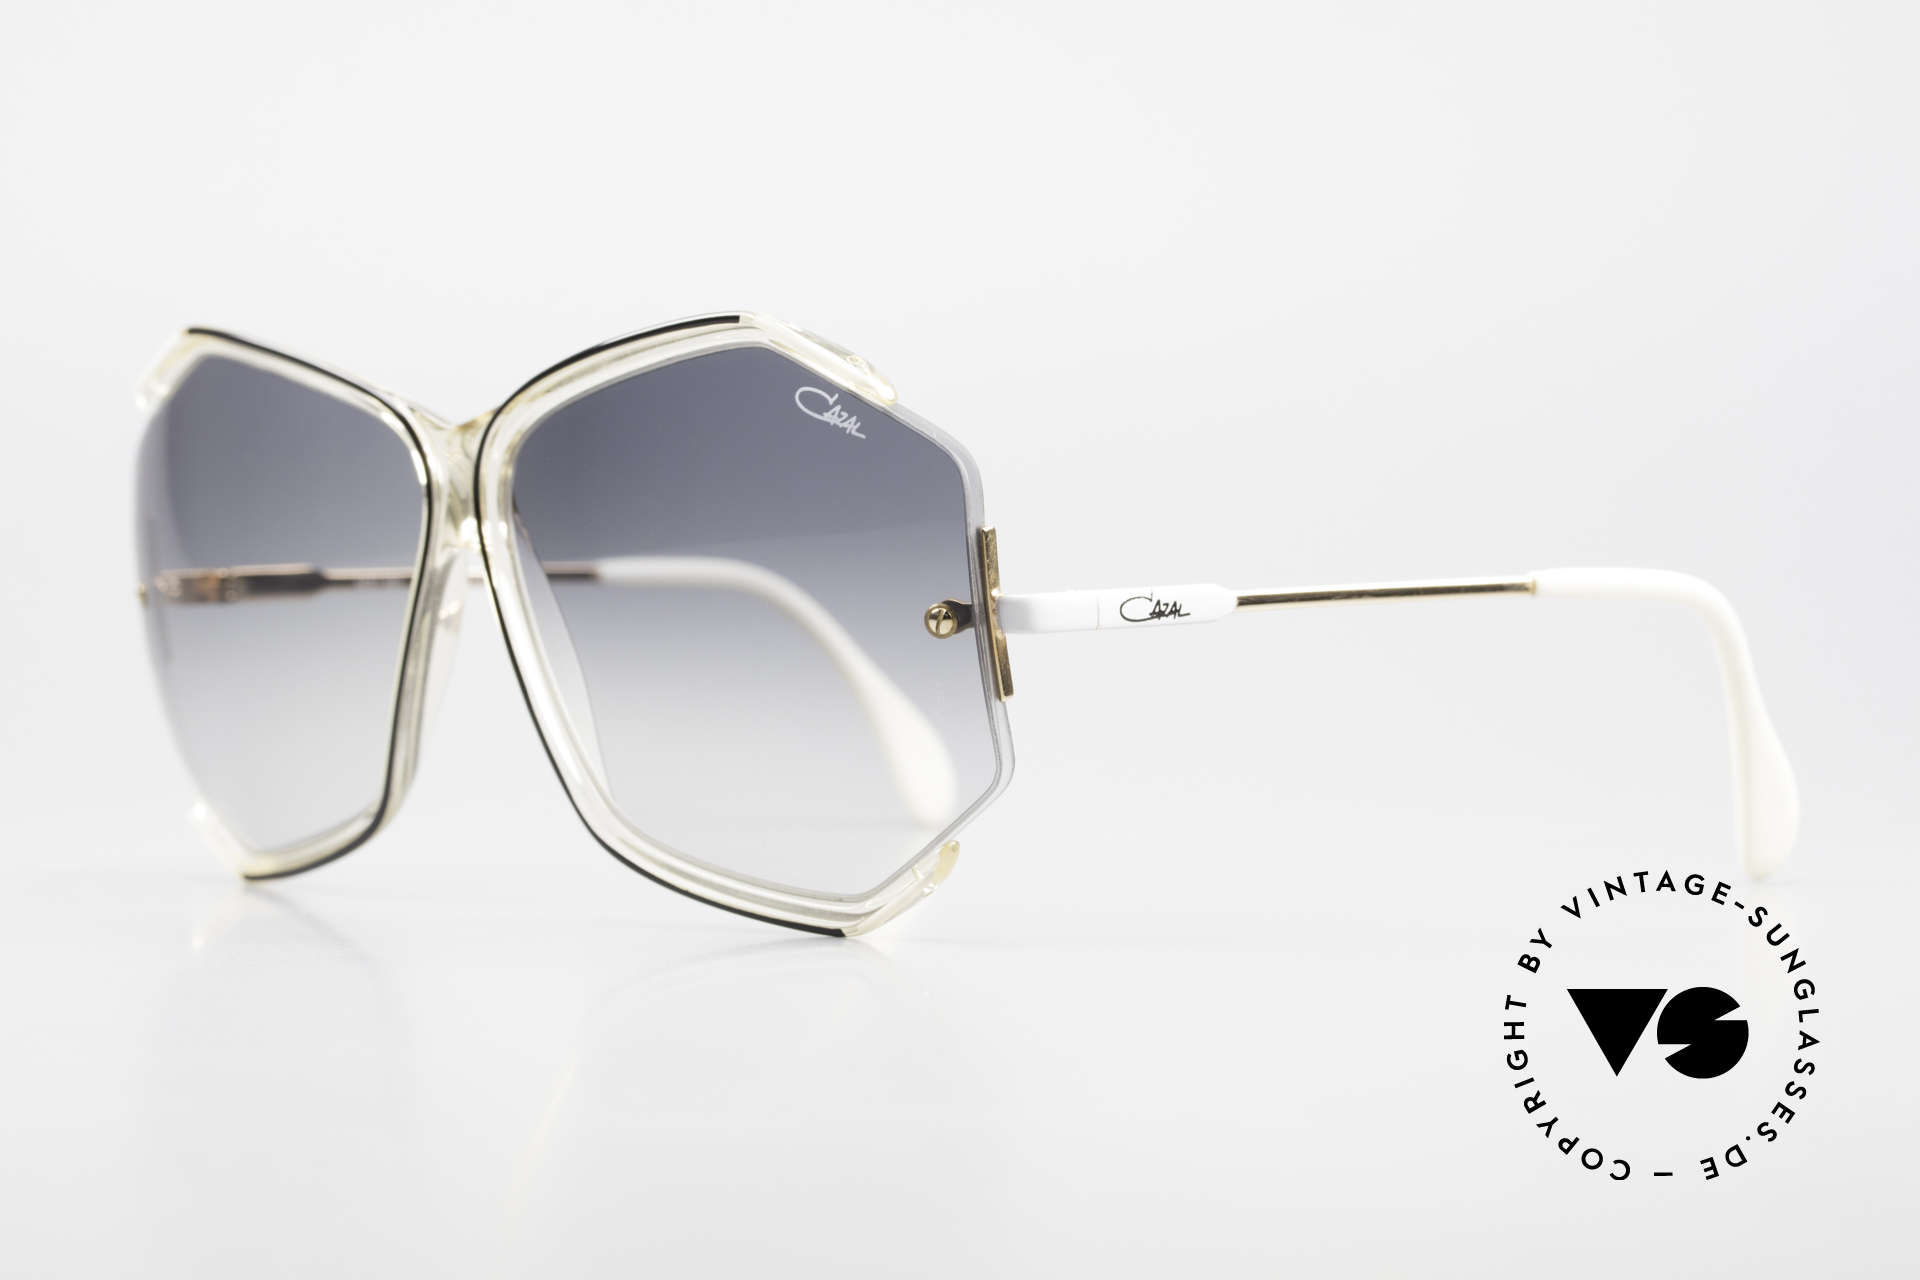 Cazal 852 Oversized 80's Shades Ladies, subtly sophisticated (a true masterpiece by CAZAL), Made for Women